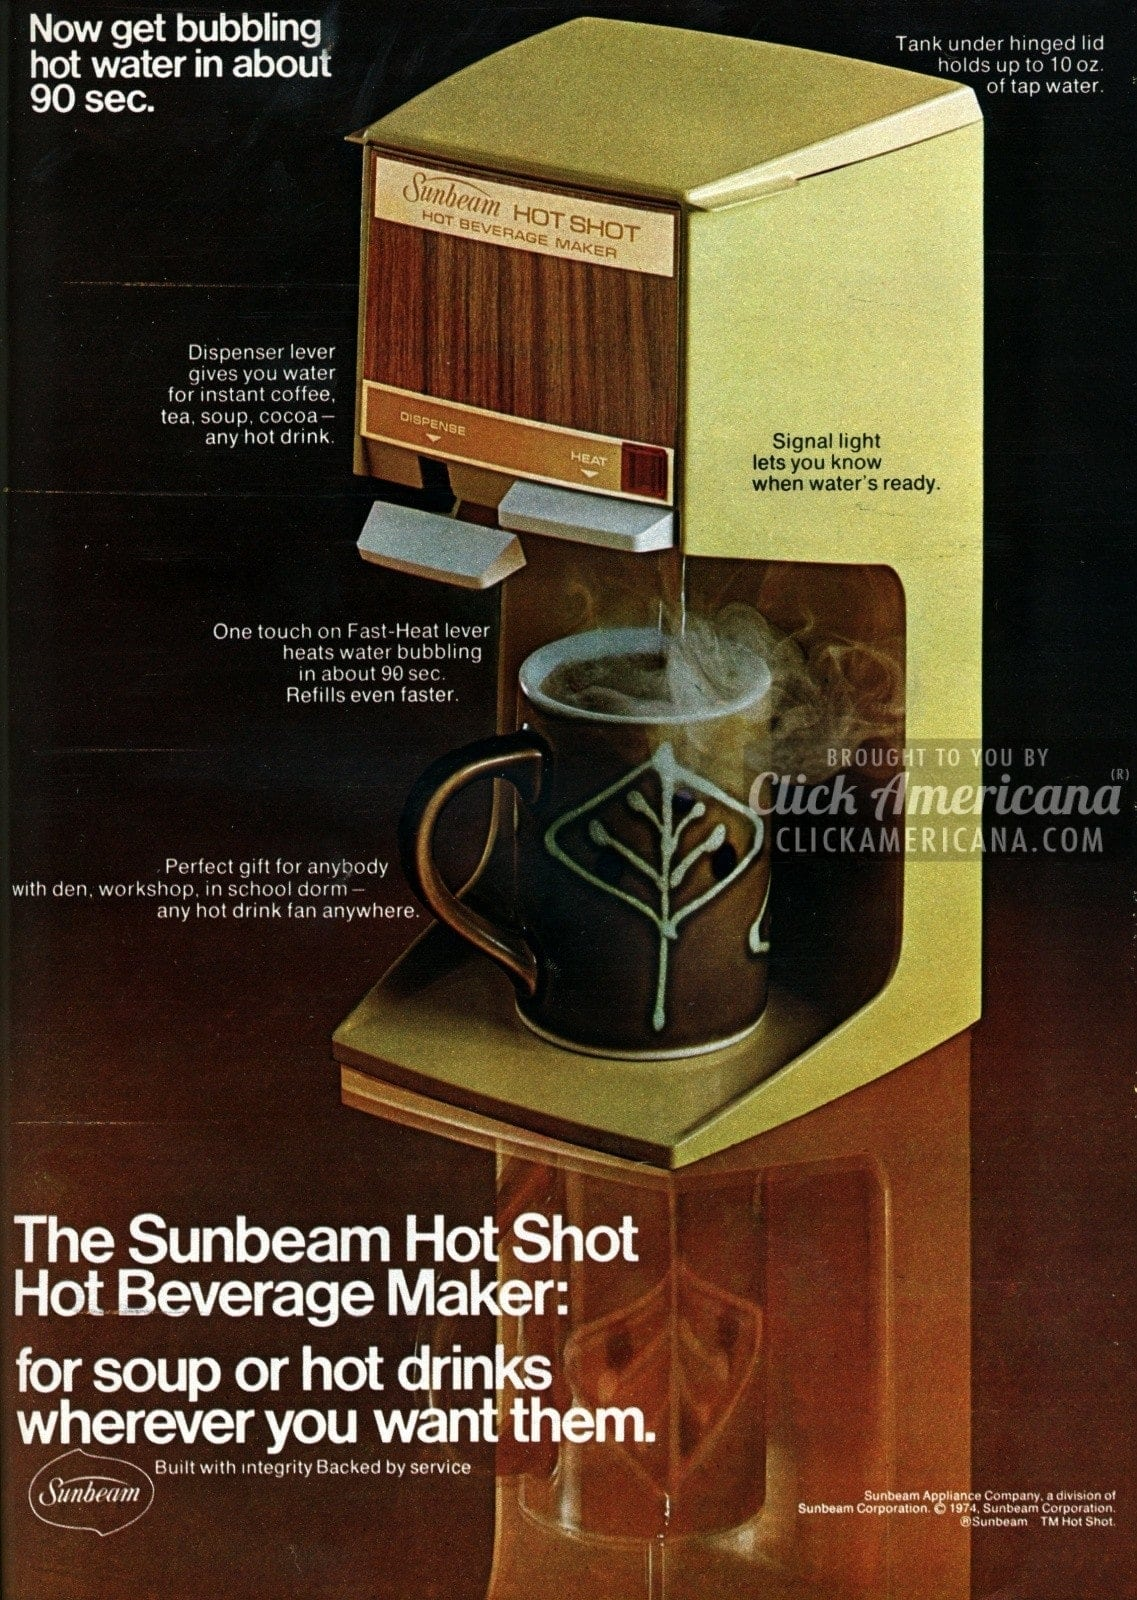 Sunbeam Hot Shot Hot Beverage Maker (1974)